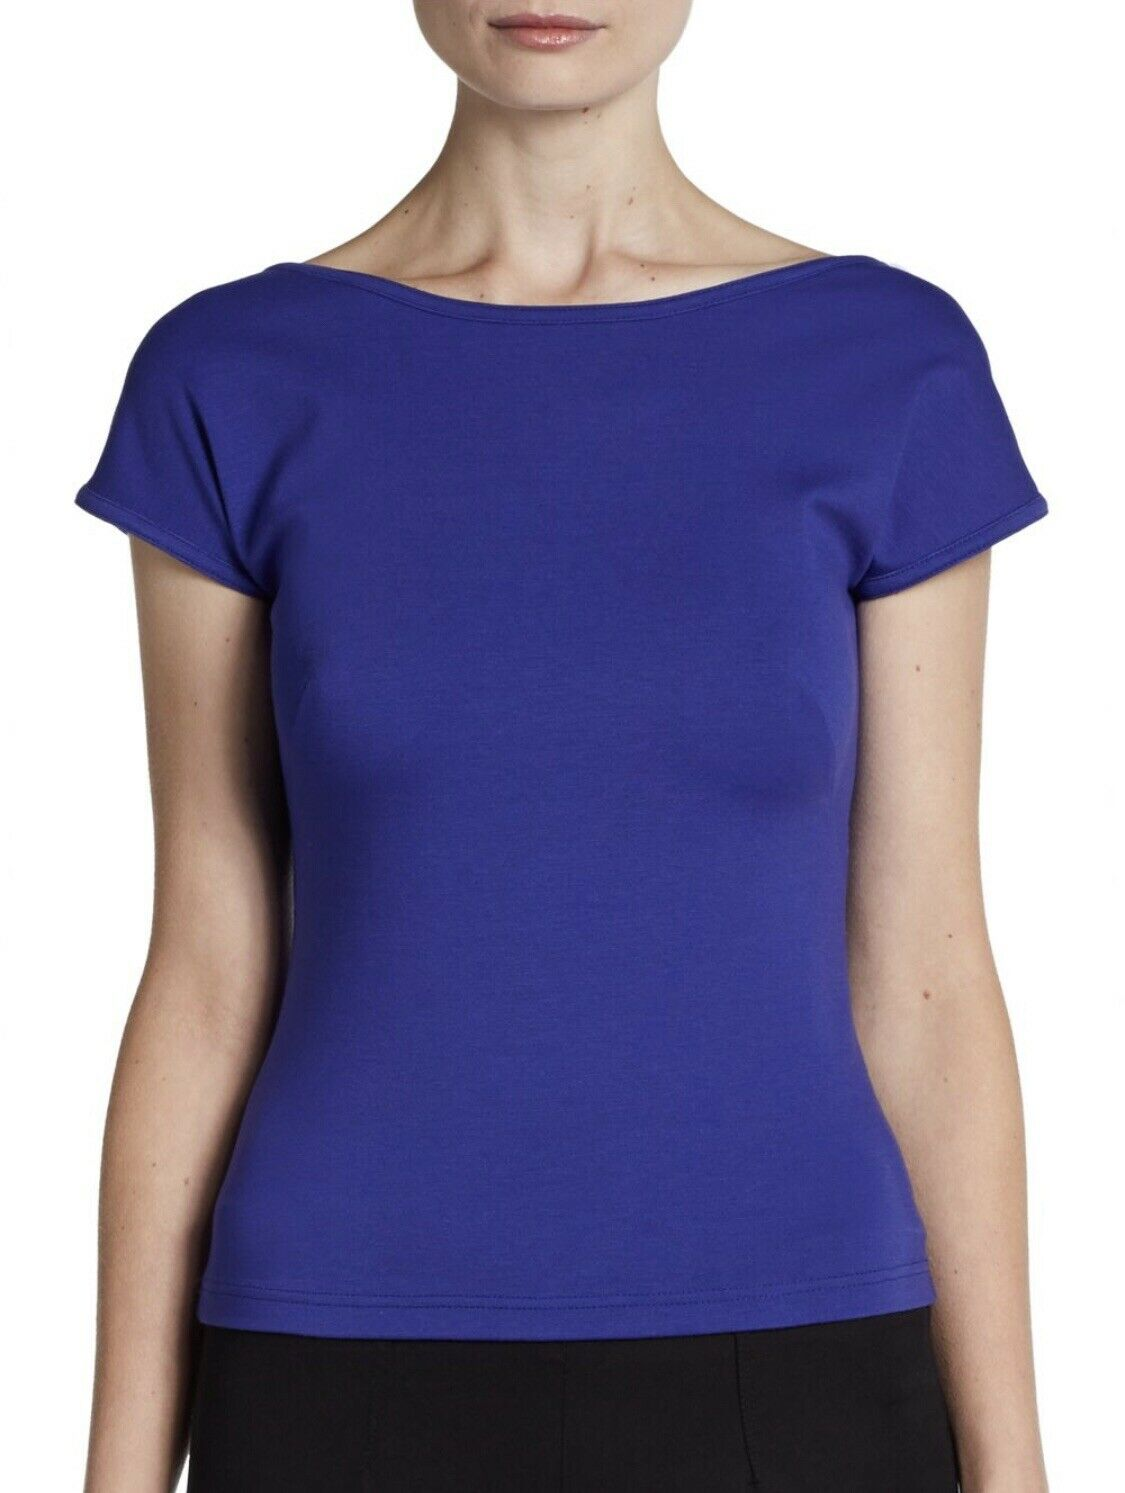 Akris Punto Stretch Jersey Top Cap Sleeve Essentials Collection Sz 6 Small